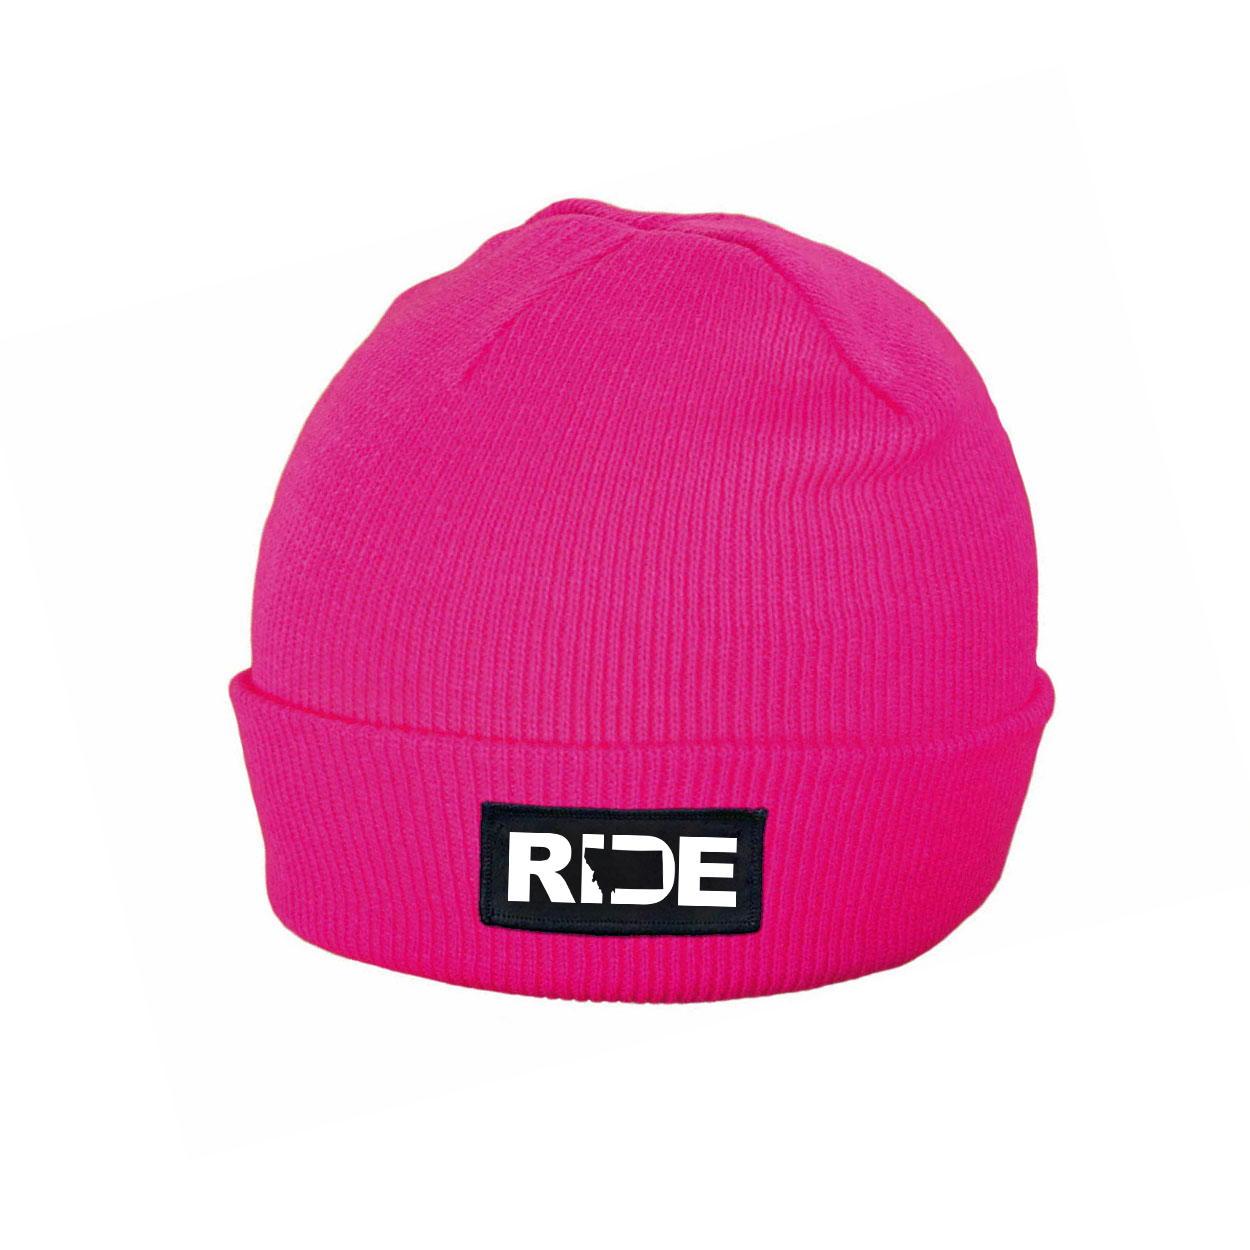 Ride Montana Night Out Woven Patch Roll Up Skully Beanie Heather Fuchsia (White Logo)